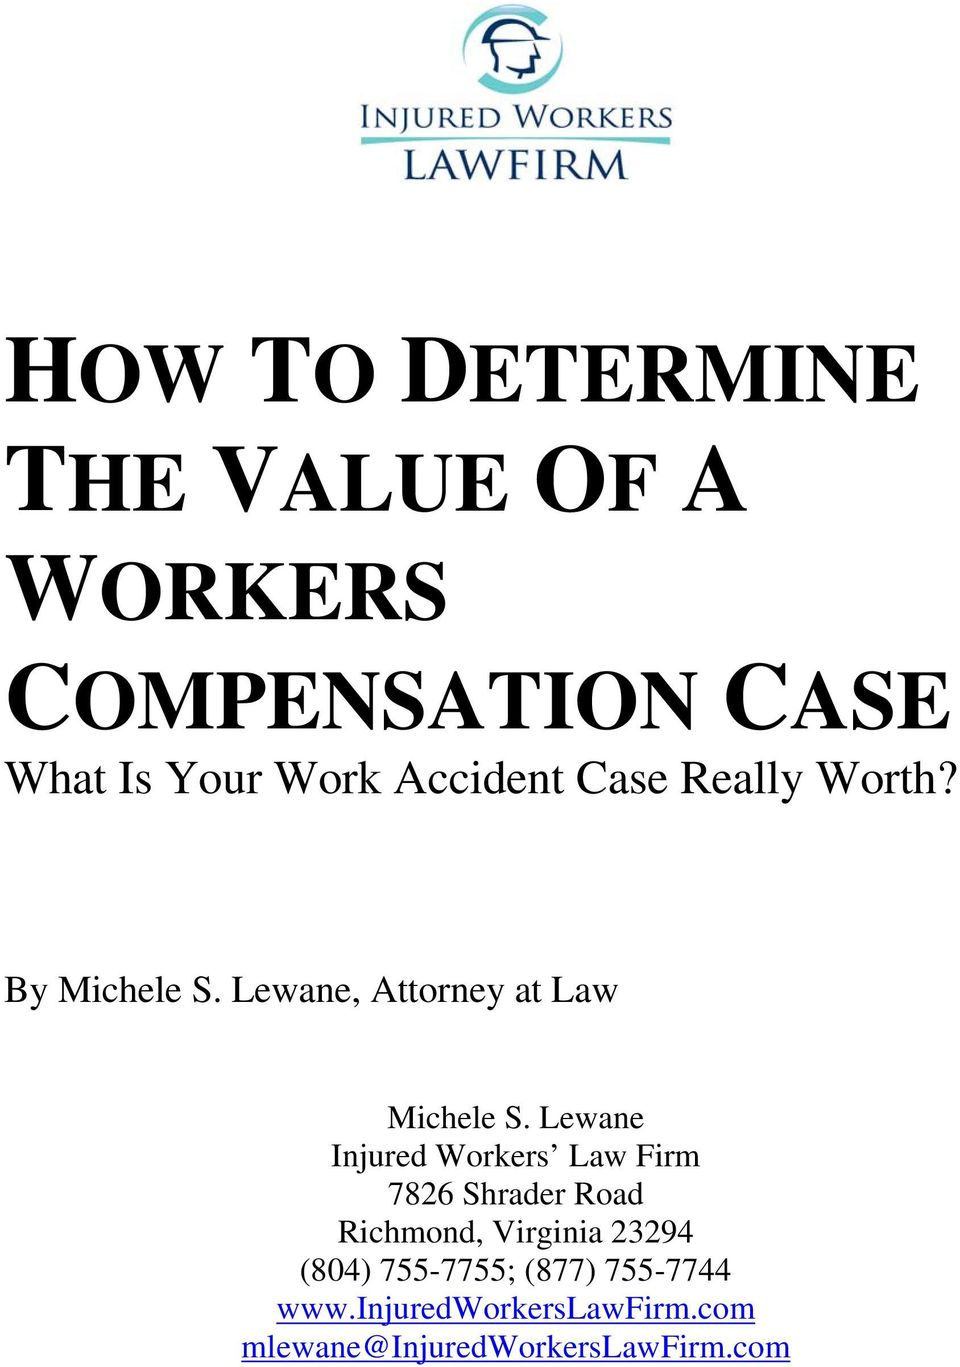 Lewane Injured Workers Law Firm 7826 Shrader Road Richmond, Virginia 23294 (804)